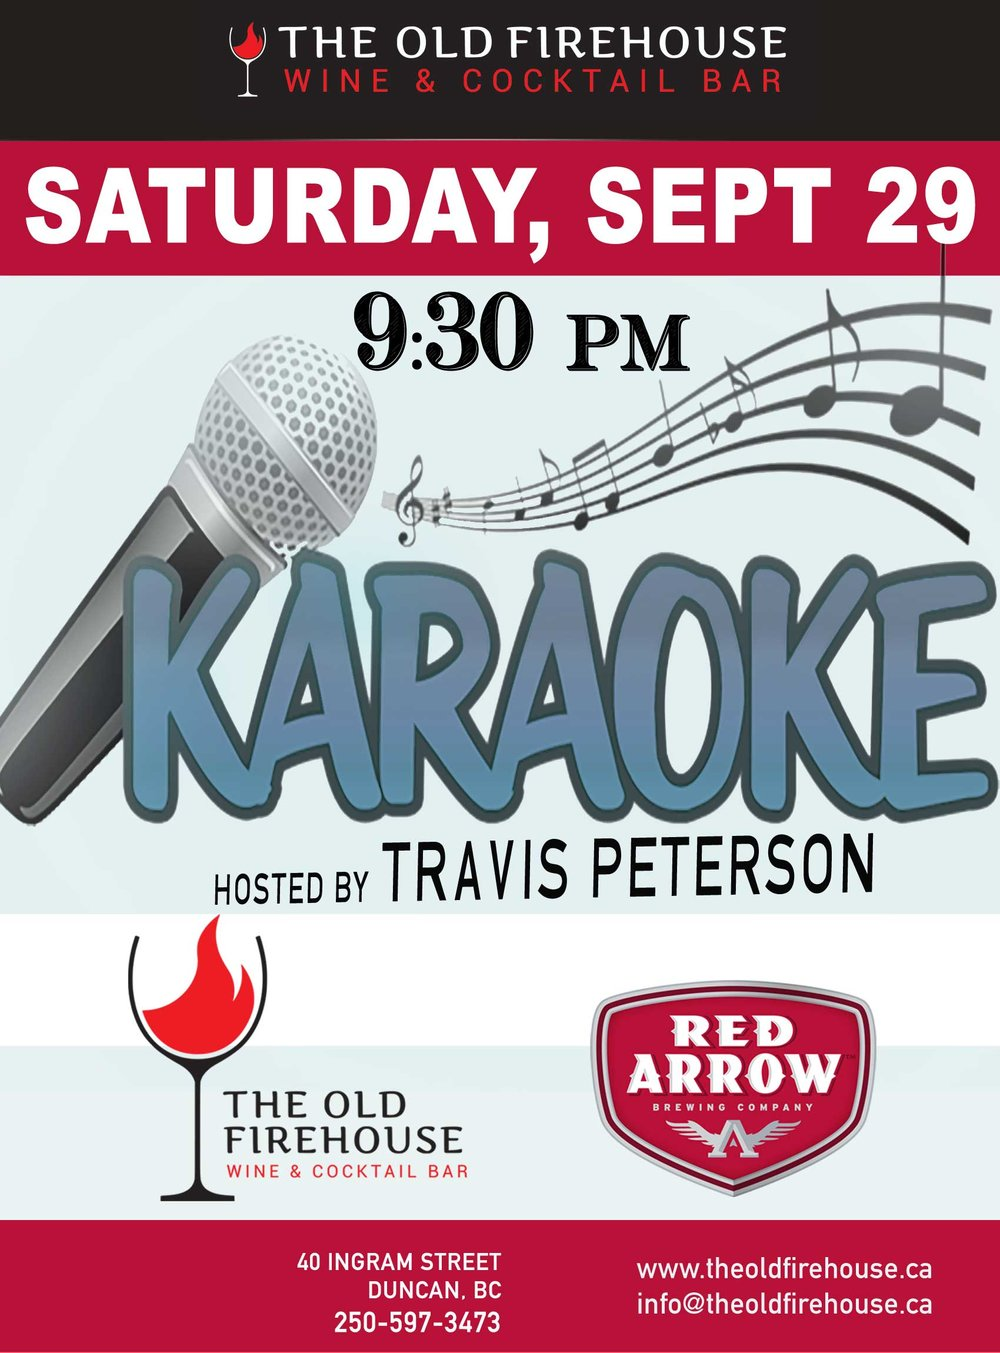 karaoke-poster-red-arrow-september-29.jpg